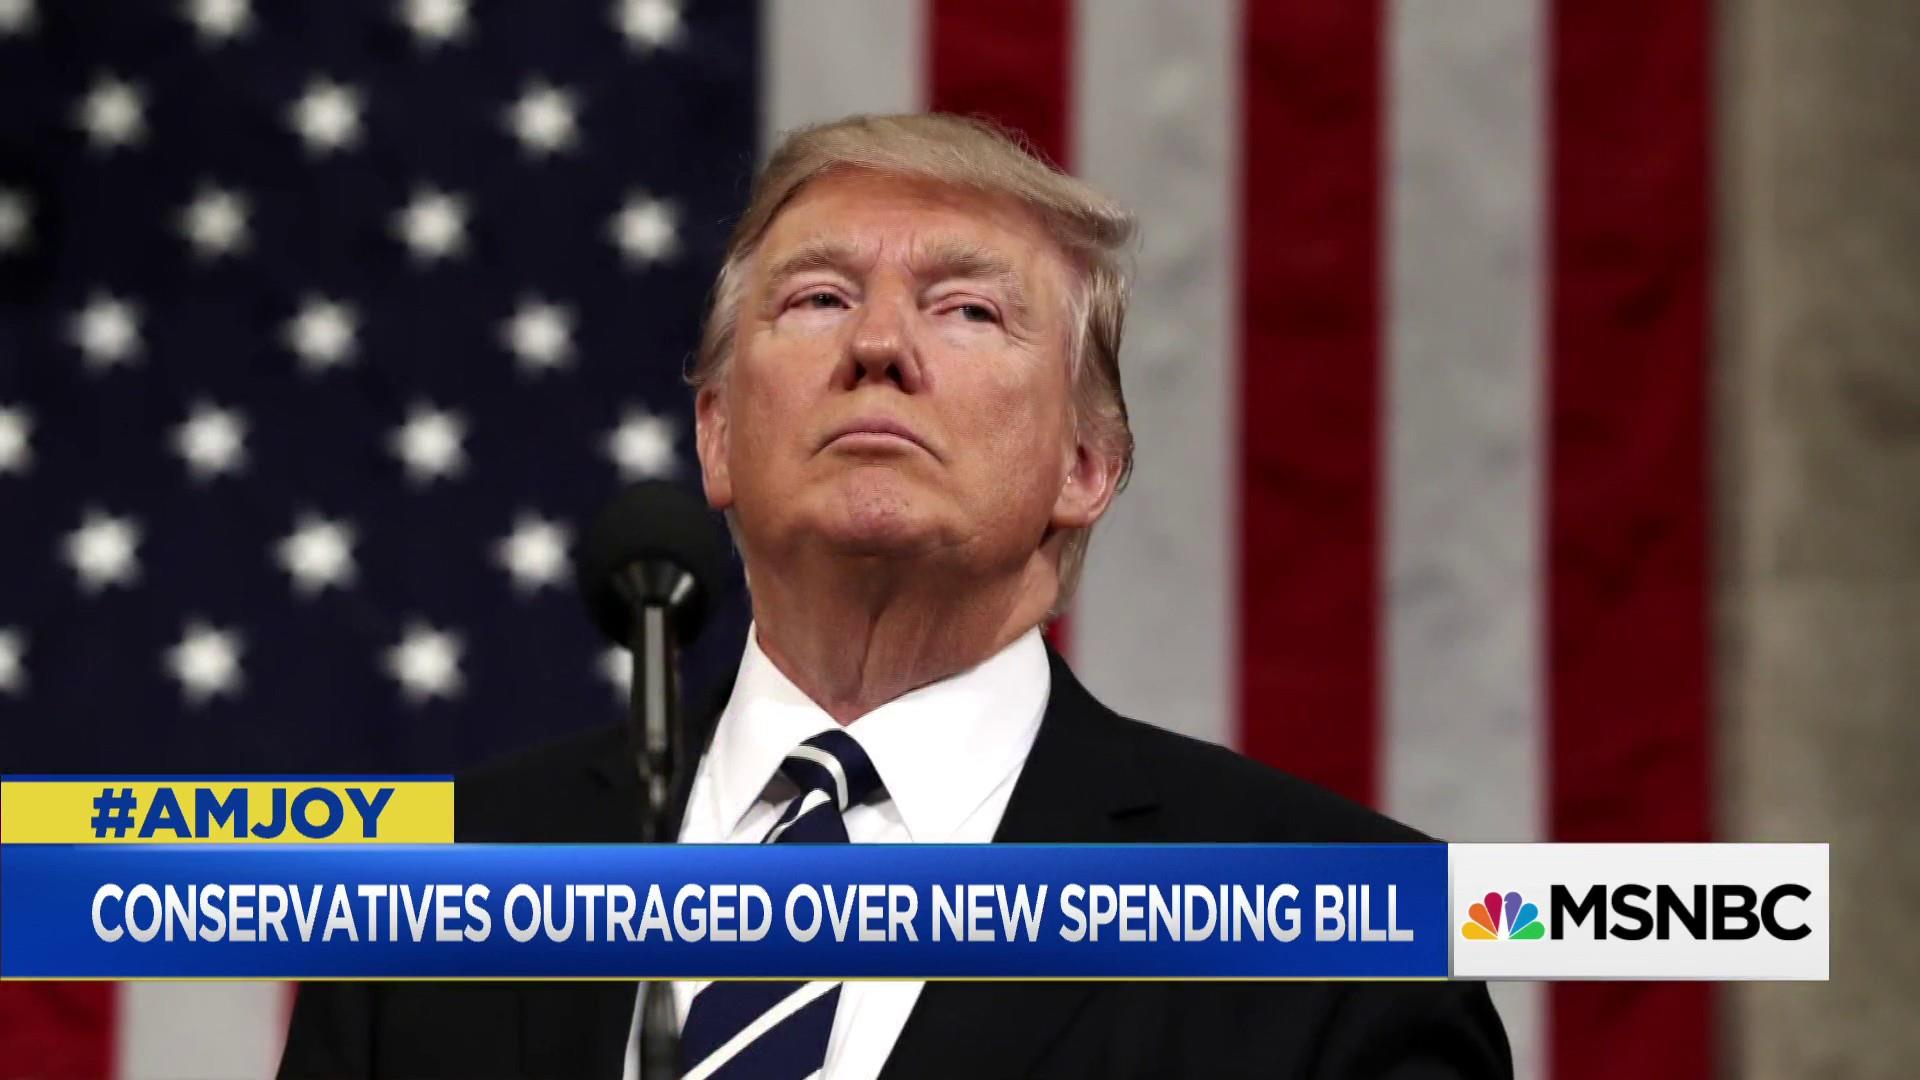 Trump signs spending bill sparking right-wing media backlash